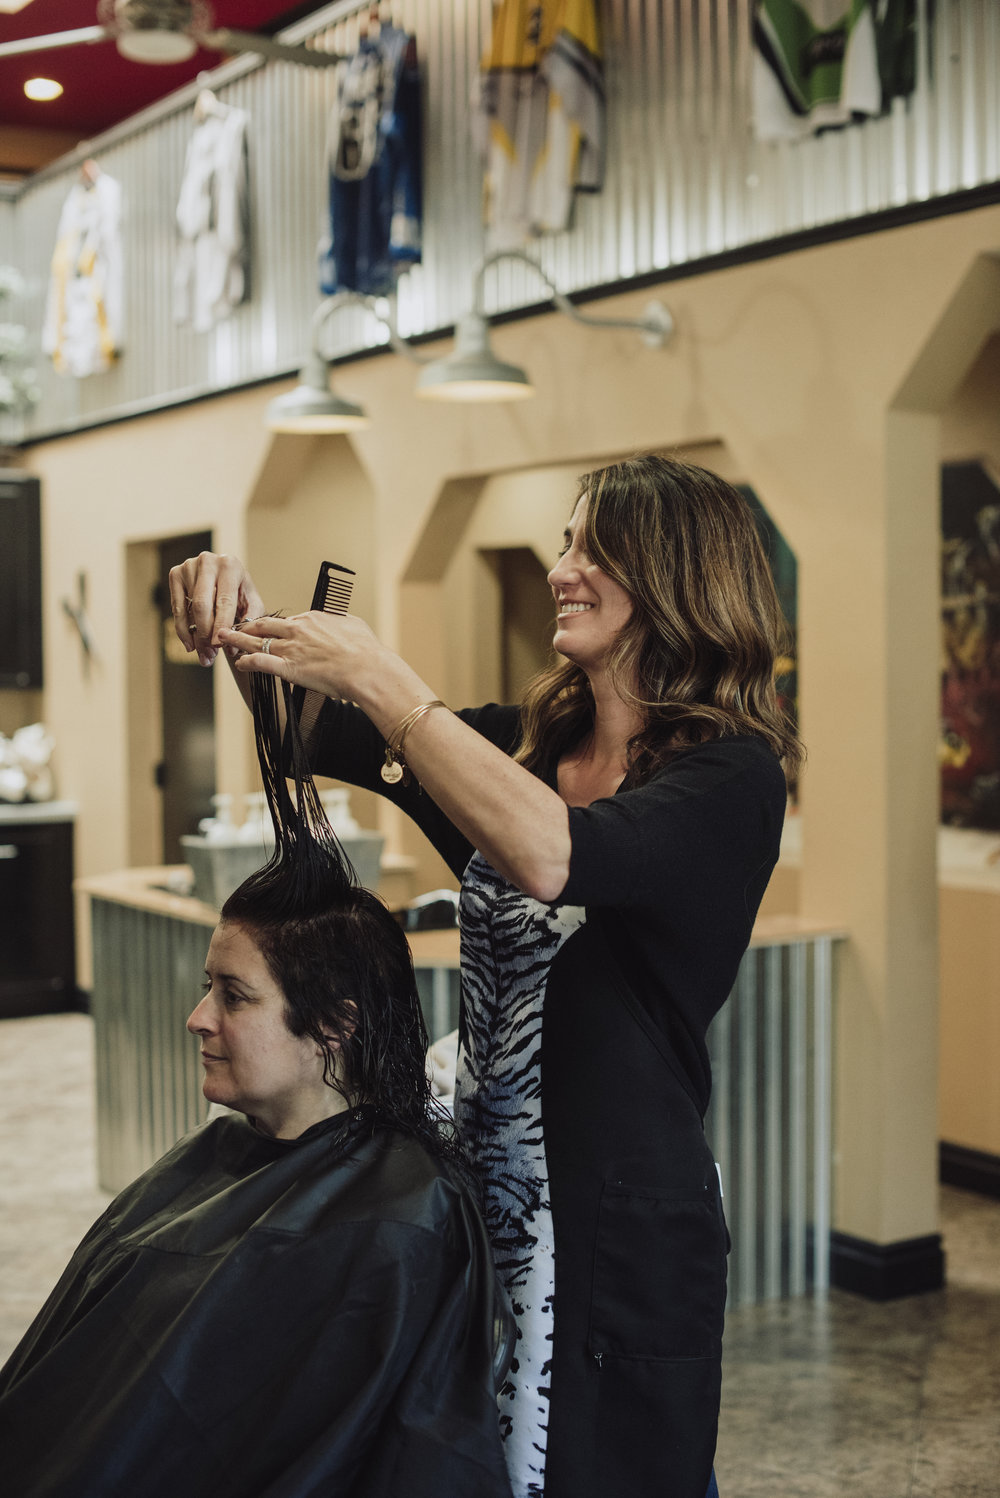 Lynn T. finishing a color and haircut